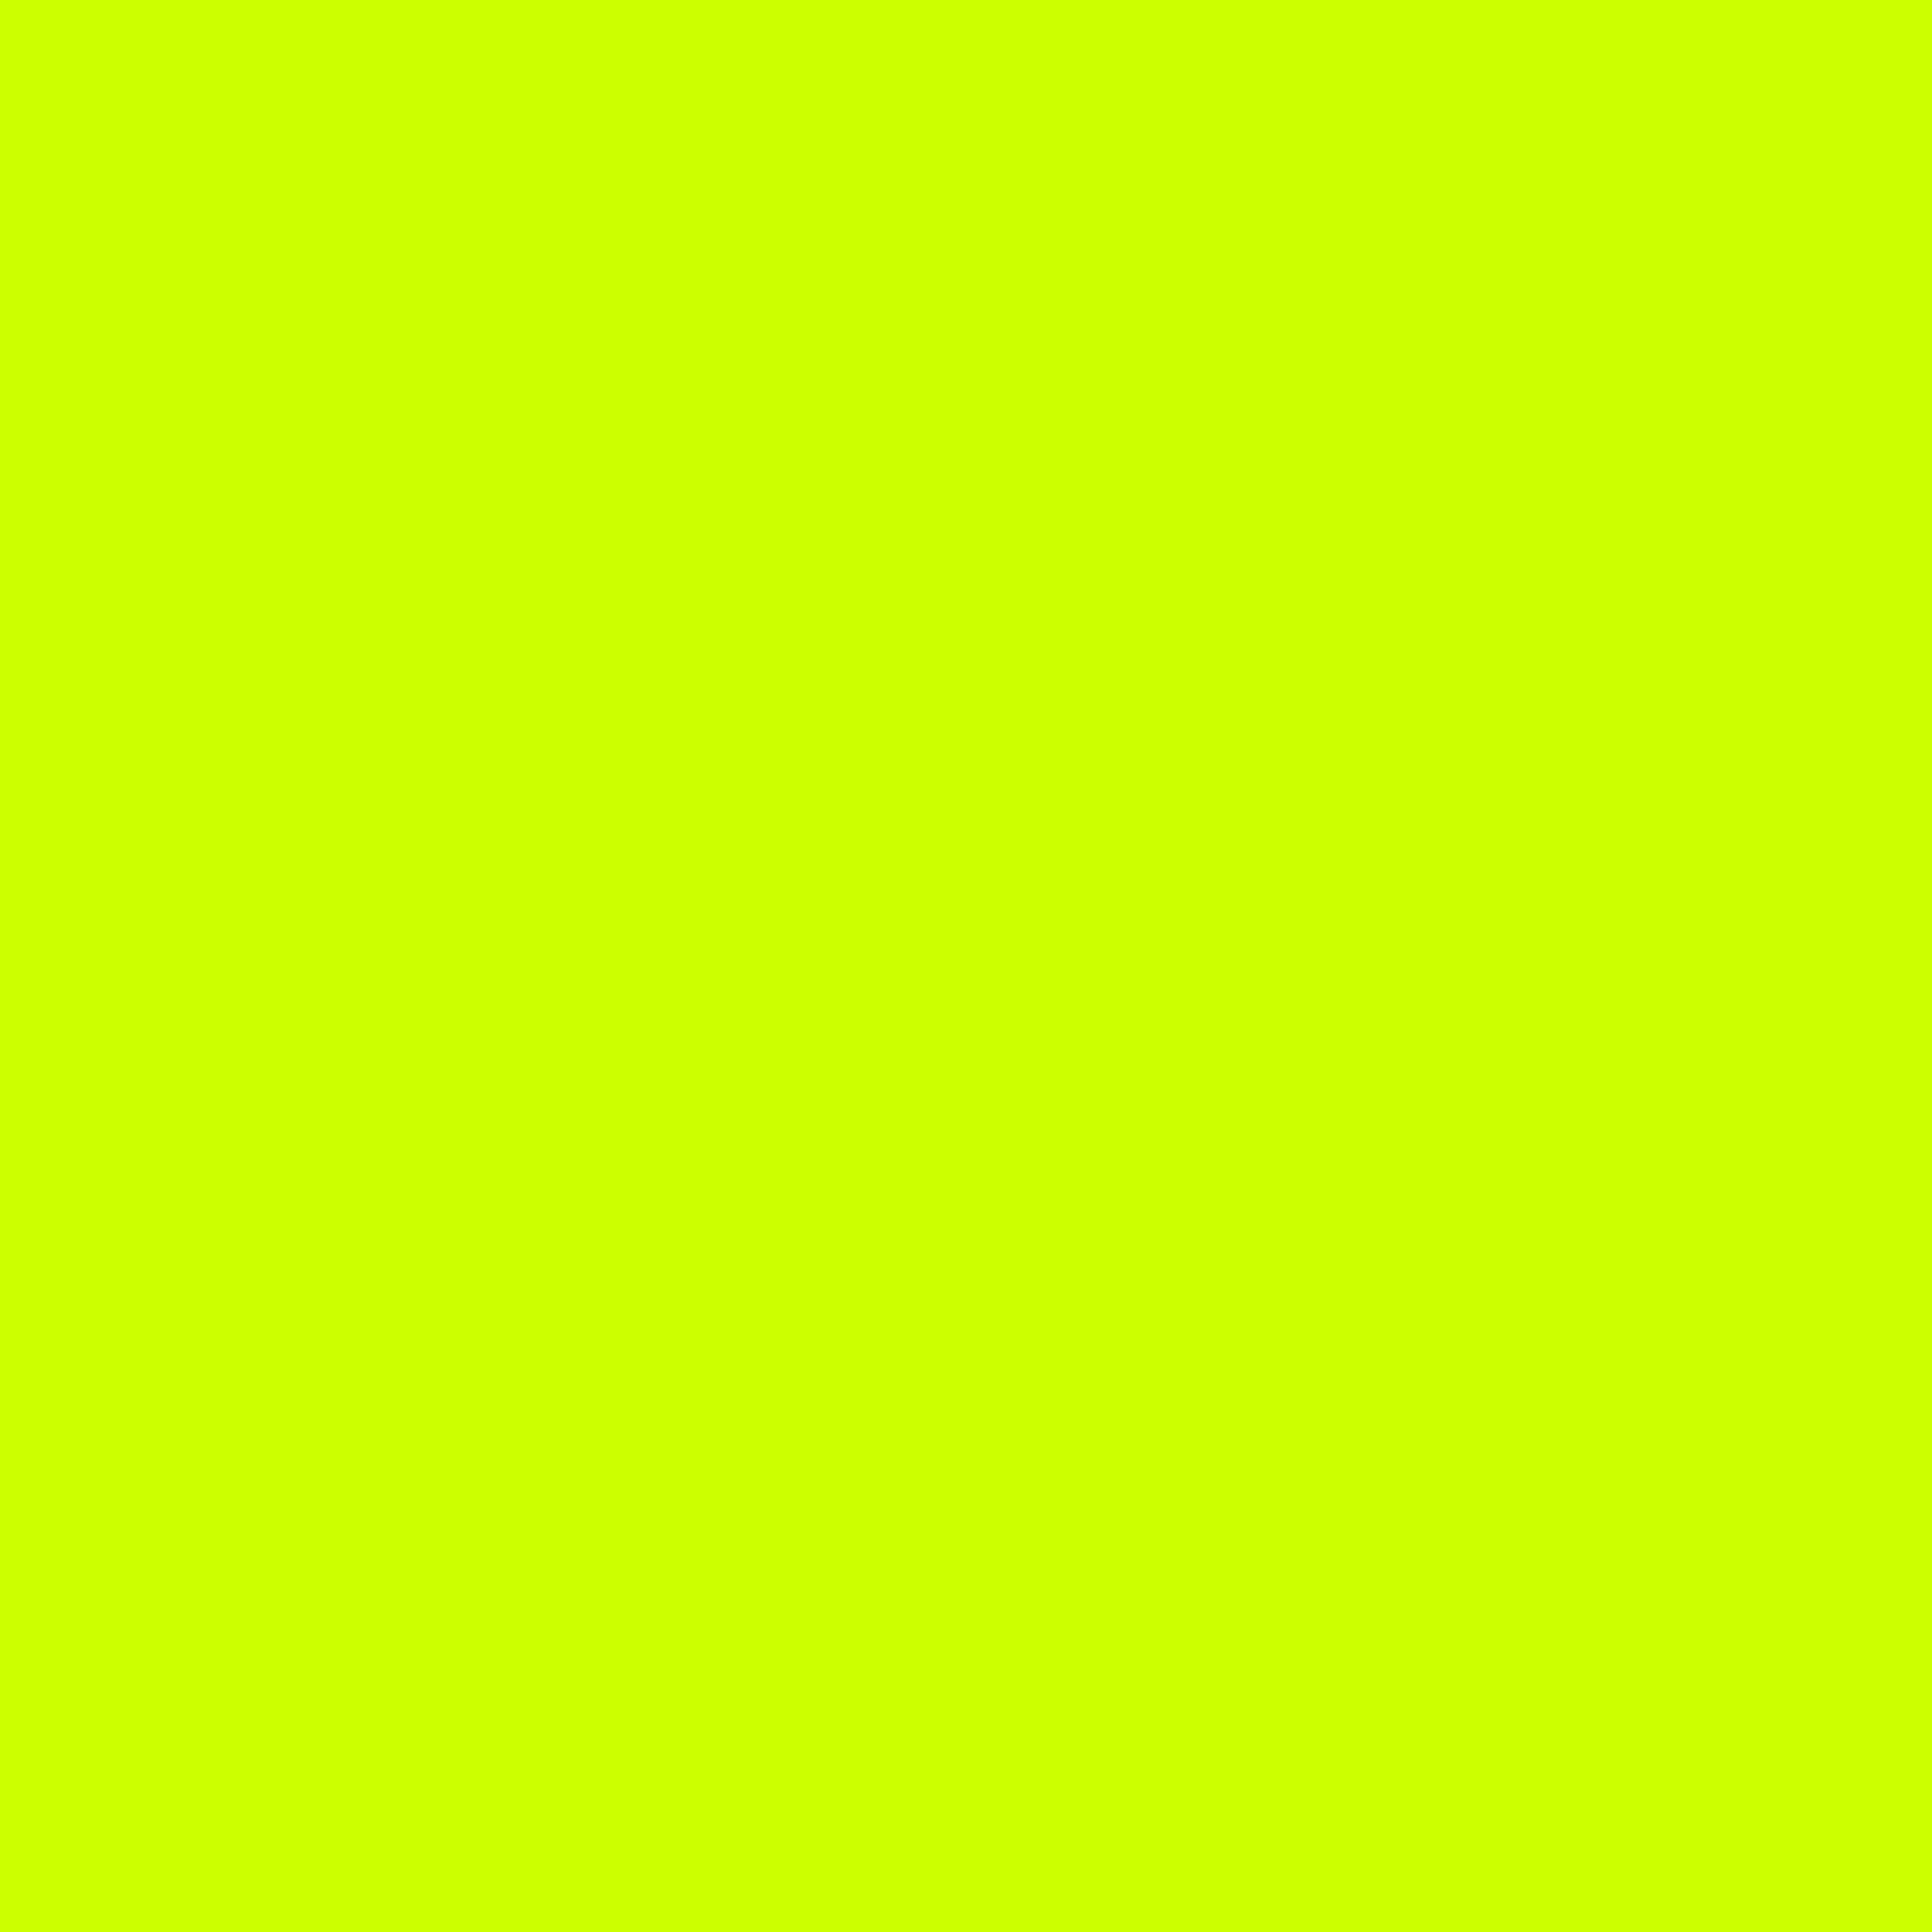 3600x3600 Electric Lime Solid Color Background